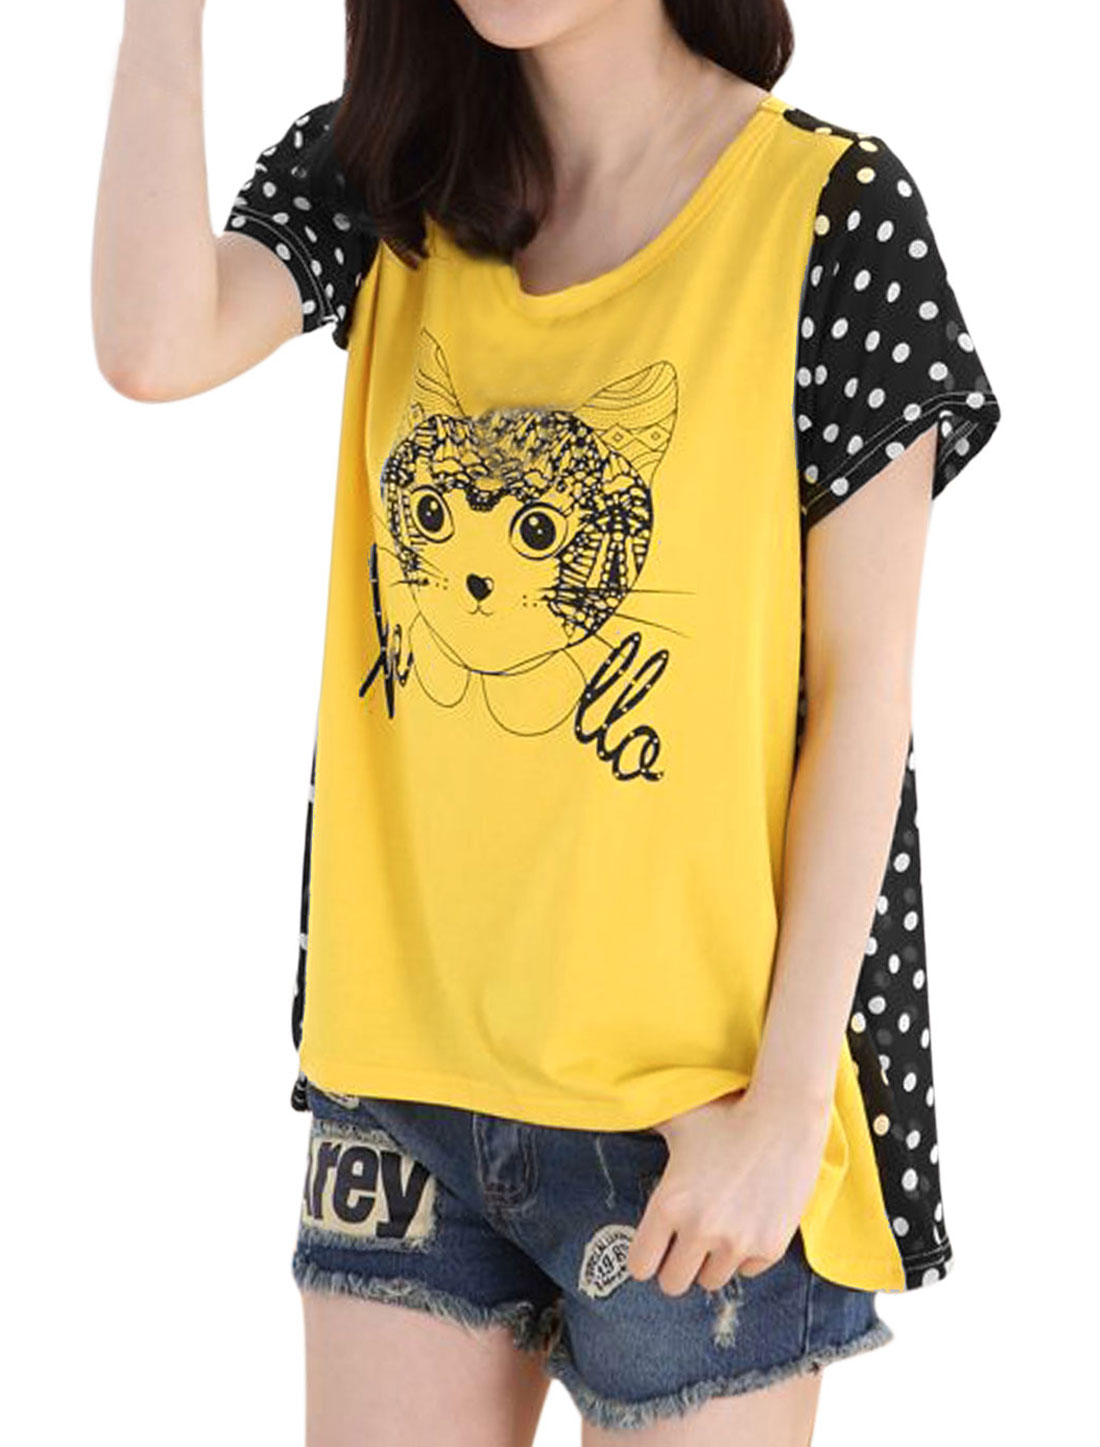 Lady Chiffon Panel See Through Back Loose T-shirt Bright Yellow M